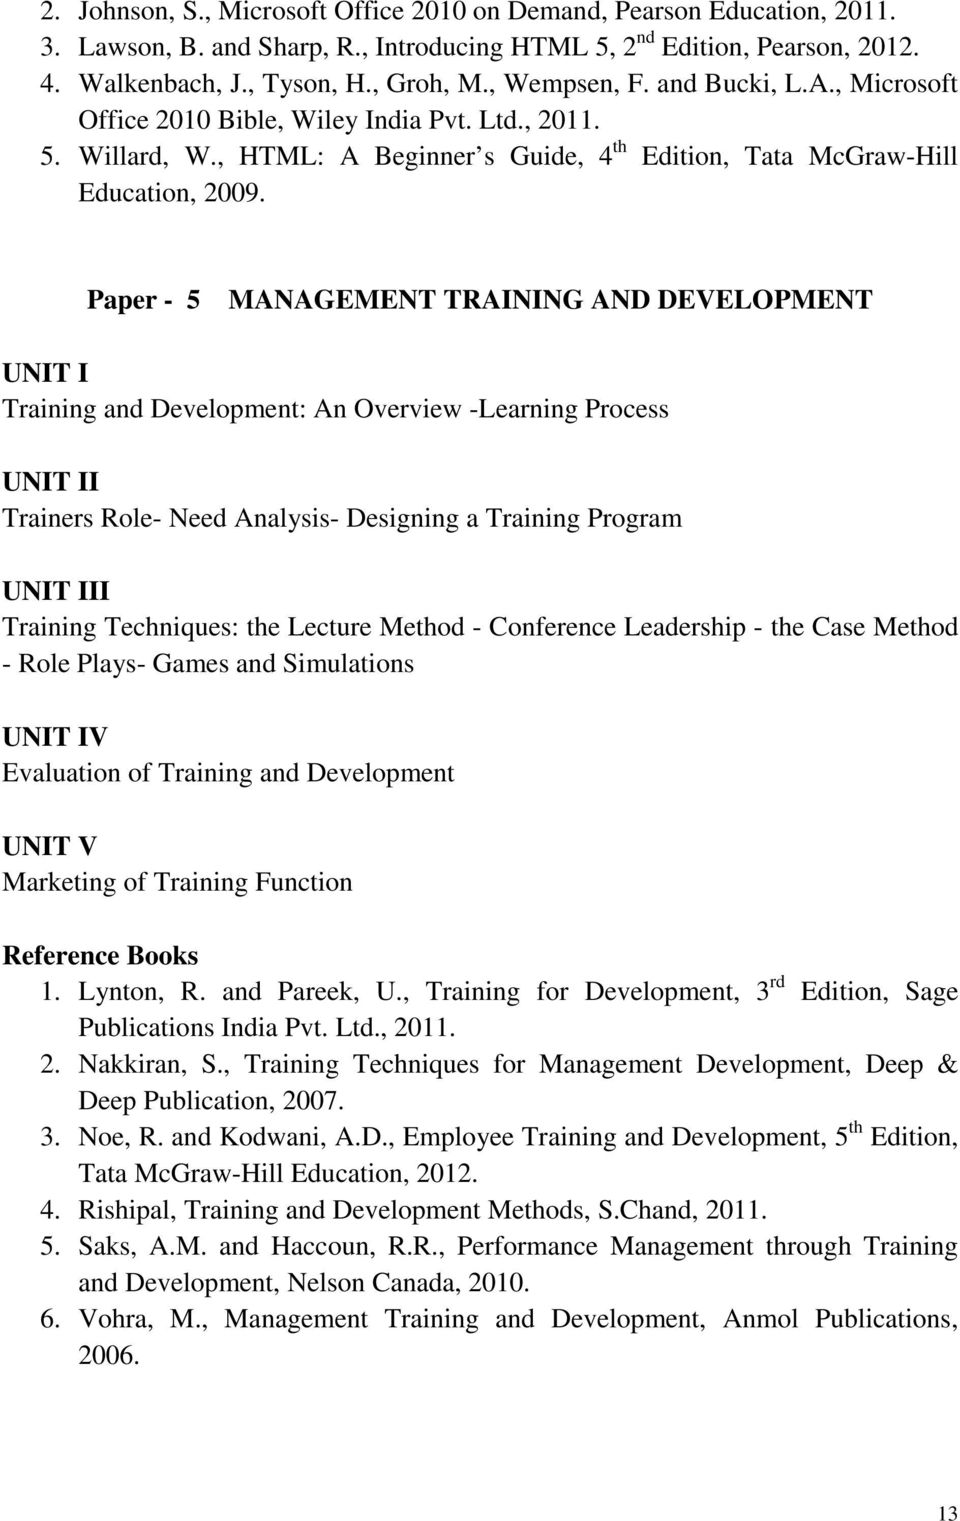 Paper - 5 MANAGEMENT TRAINING AND DEVELOPMENT UNIT I Training and Development: An Overview -Learning Process UNIT II Trainers Role- Need Analysis- Designing a Training Program UNIT III Training